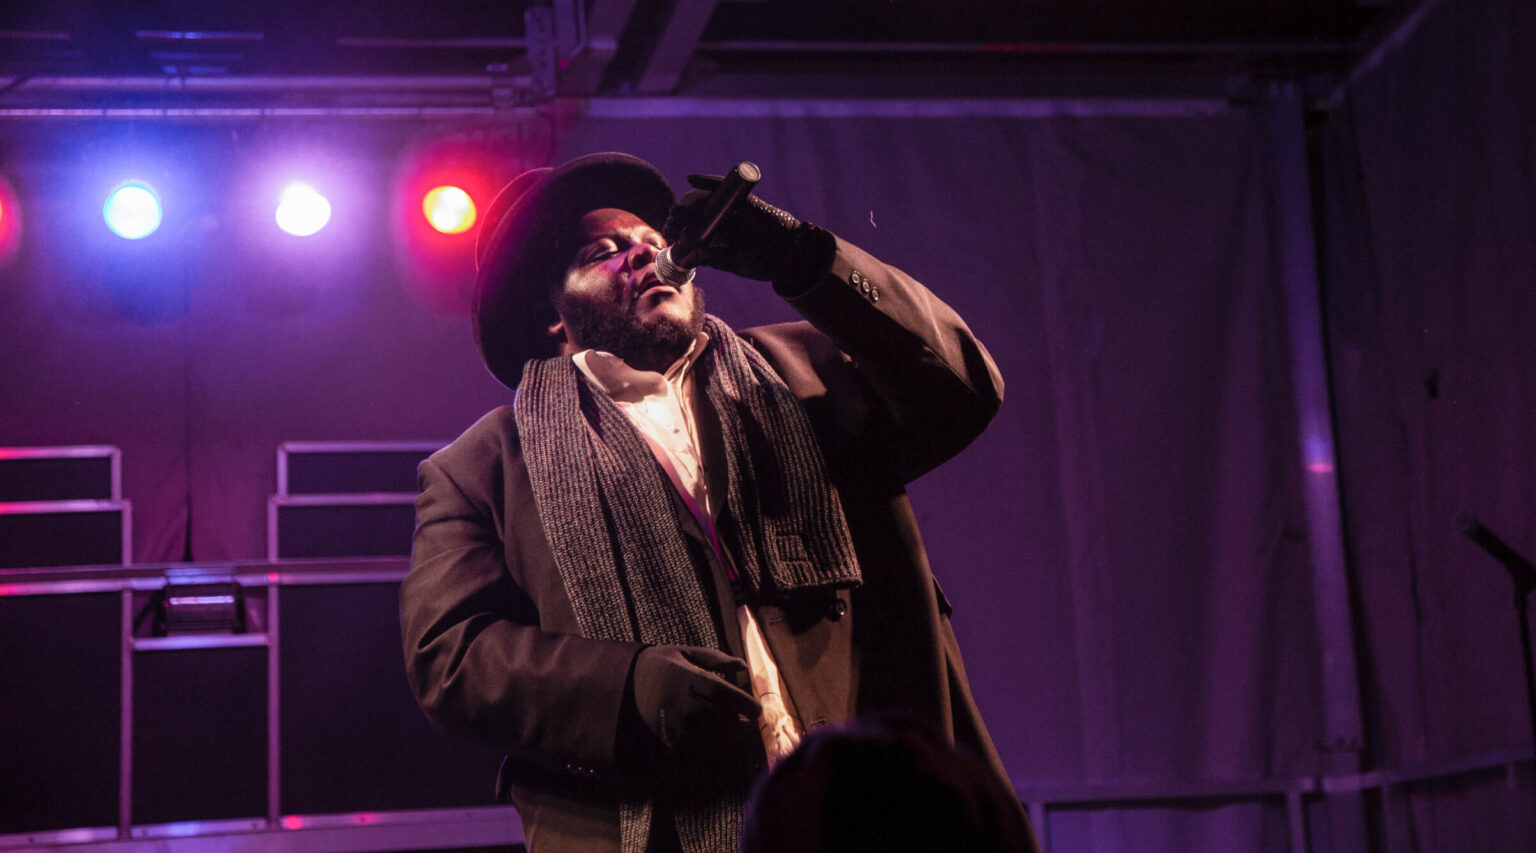 Jewish hip-hop singer Nissim Black performs during a Hanukkah festival in Pittsburgh in 2018. (Photo/JTA-Esther Wayne-SOPA Images-LightRocket via Getty Images)